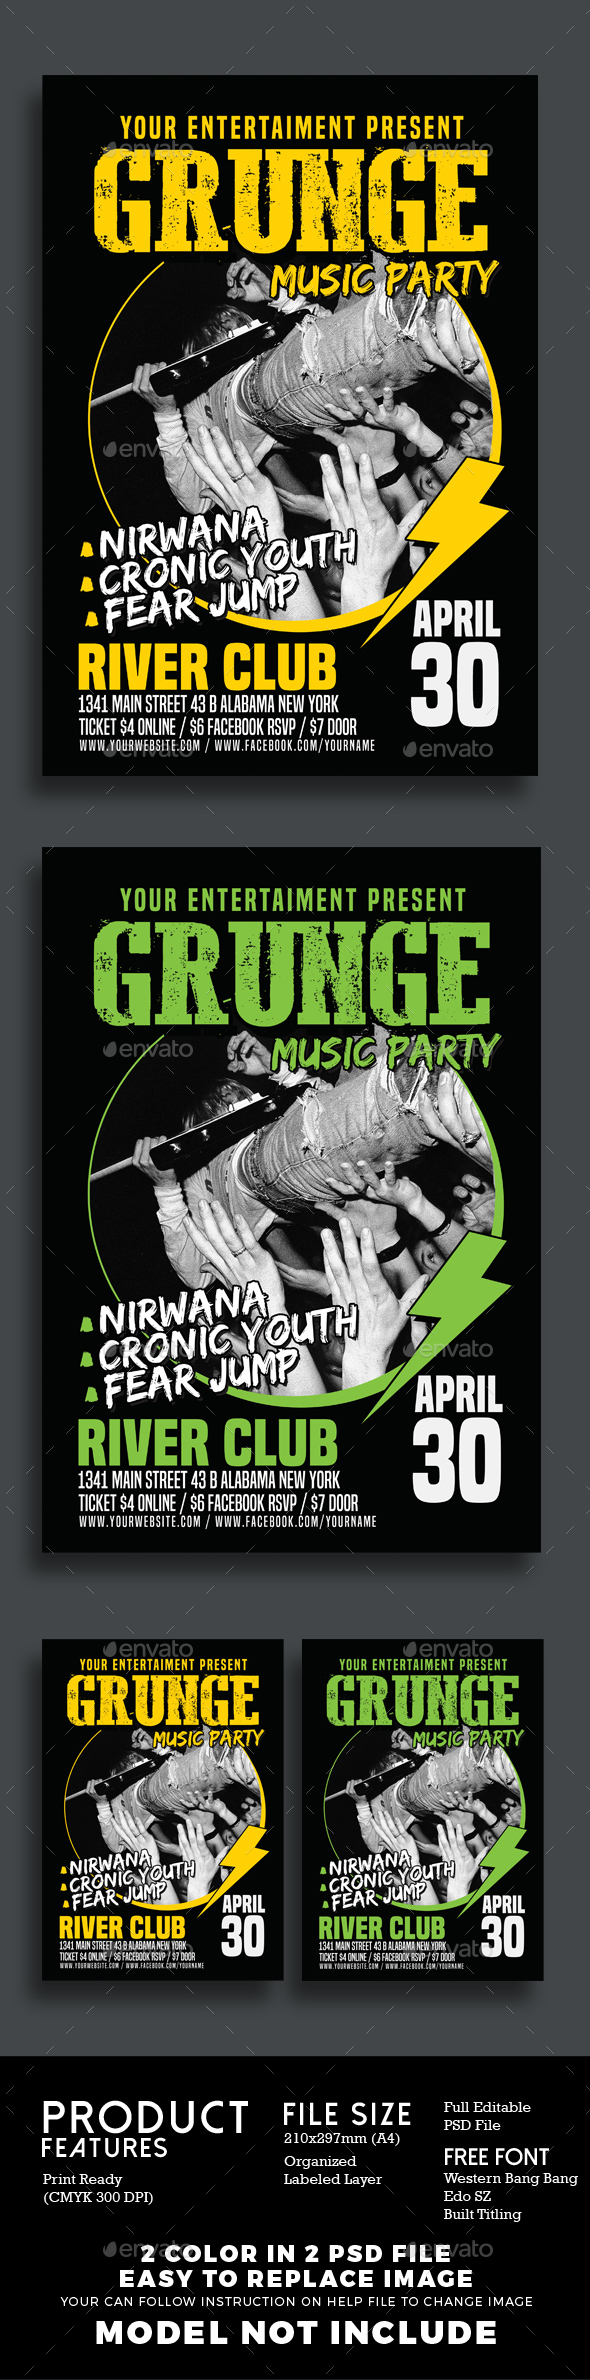 Grunge Music Party Poster Flyer - Events Flyers